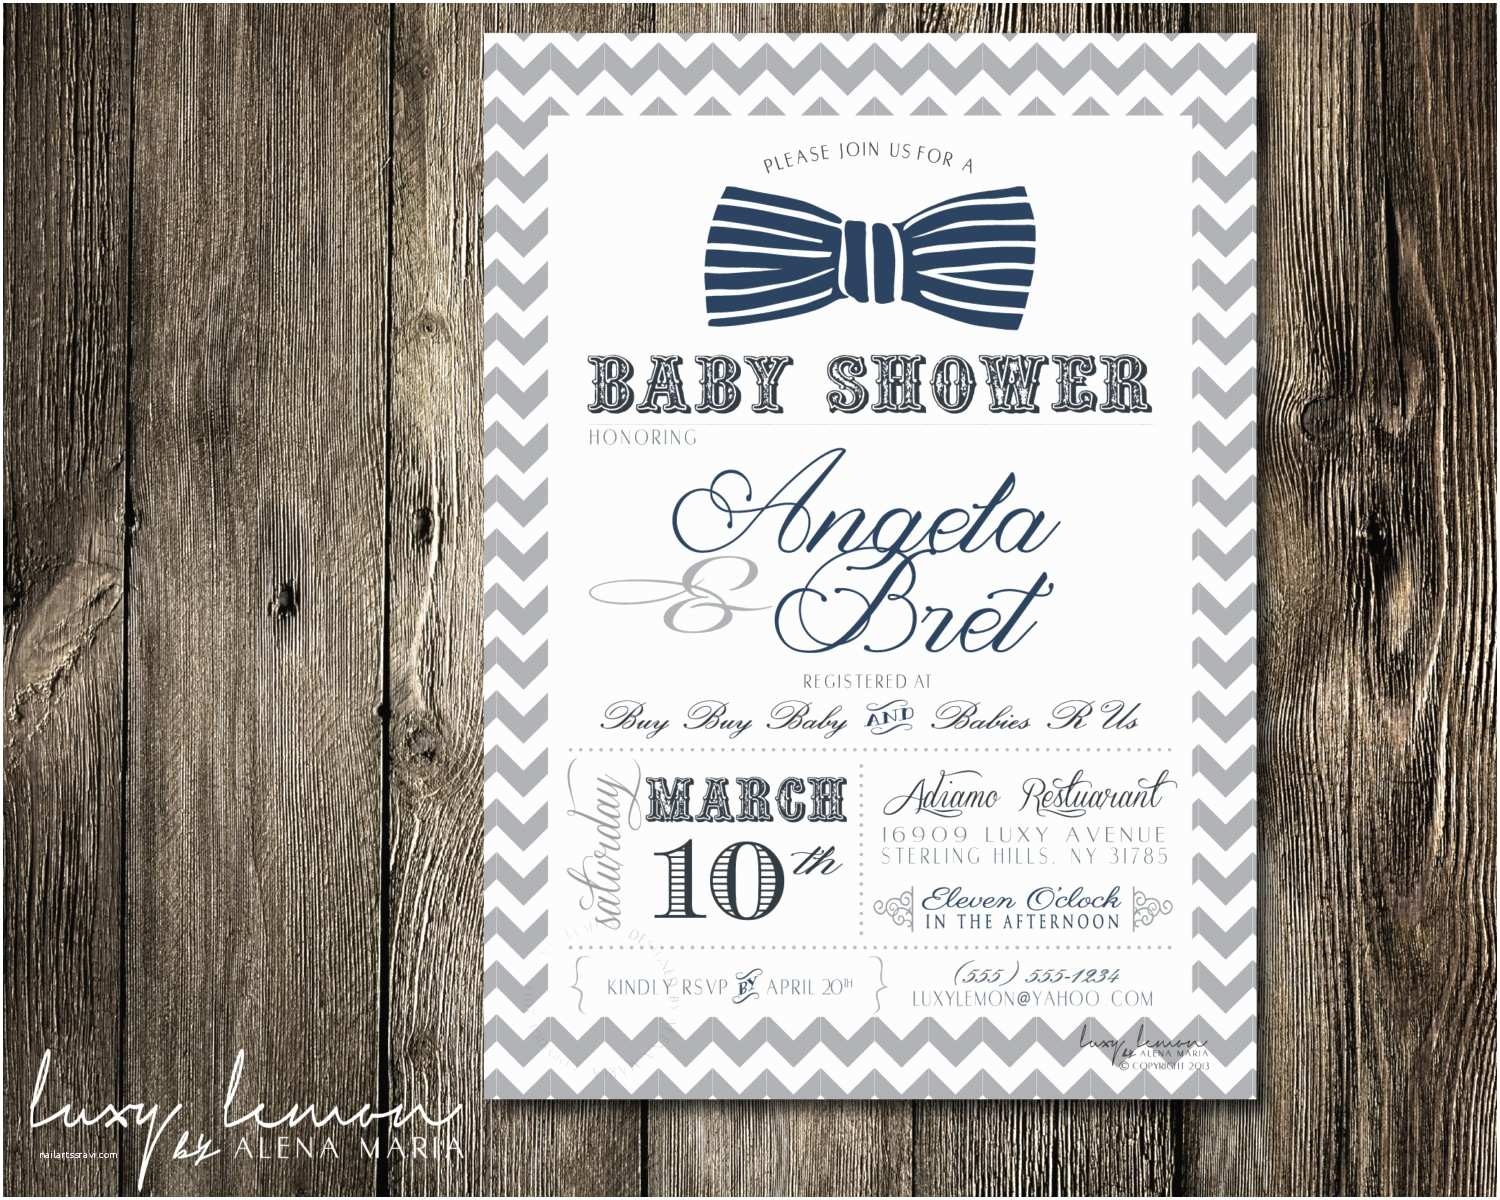 Bow Tie Baby Shower Invitations Request A Custom order and Have something Made Just for You